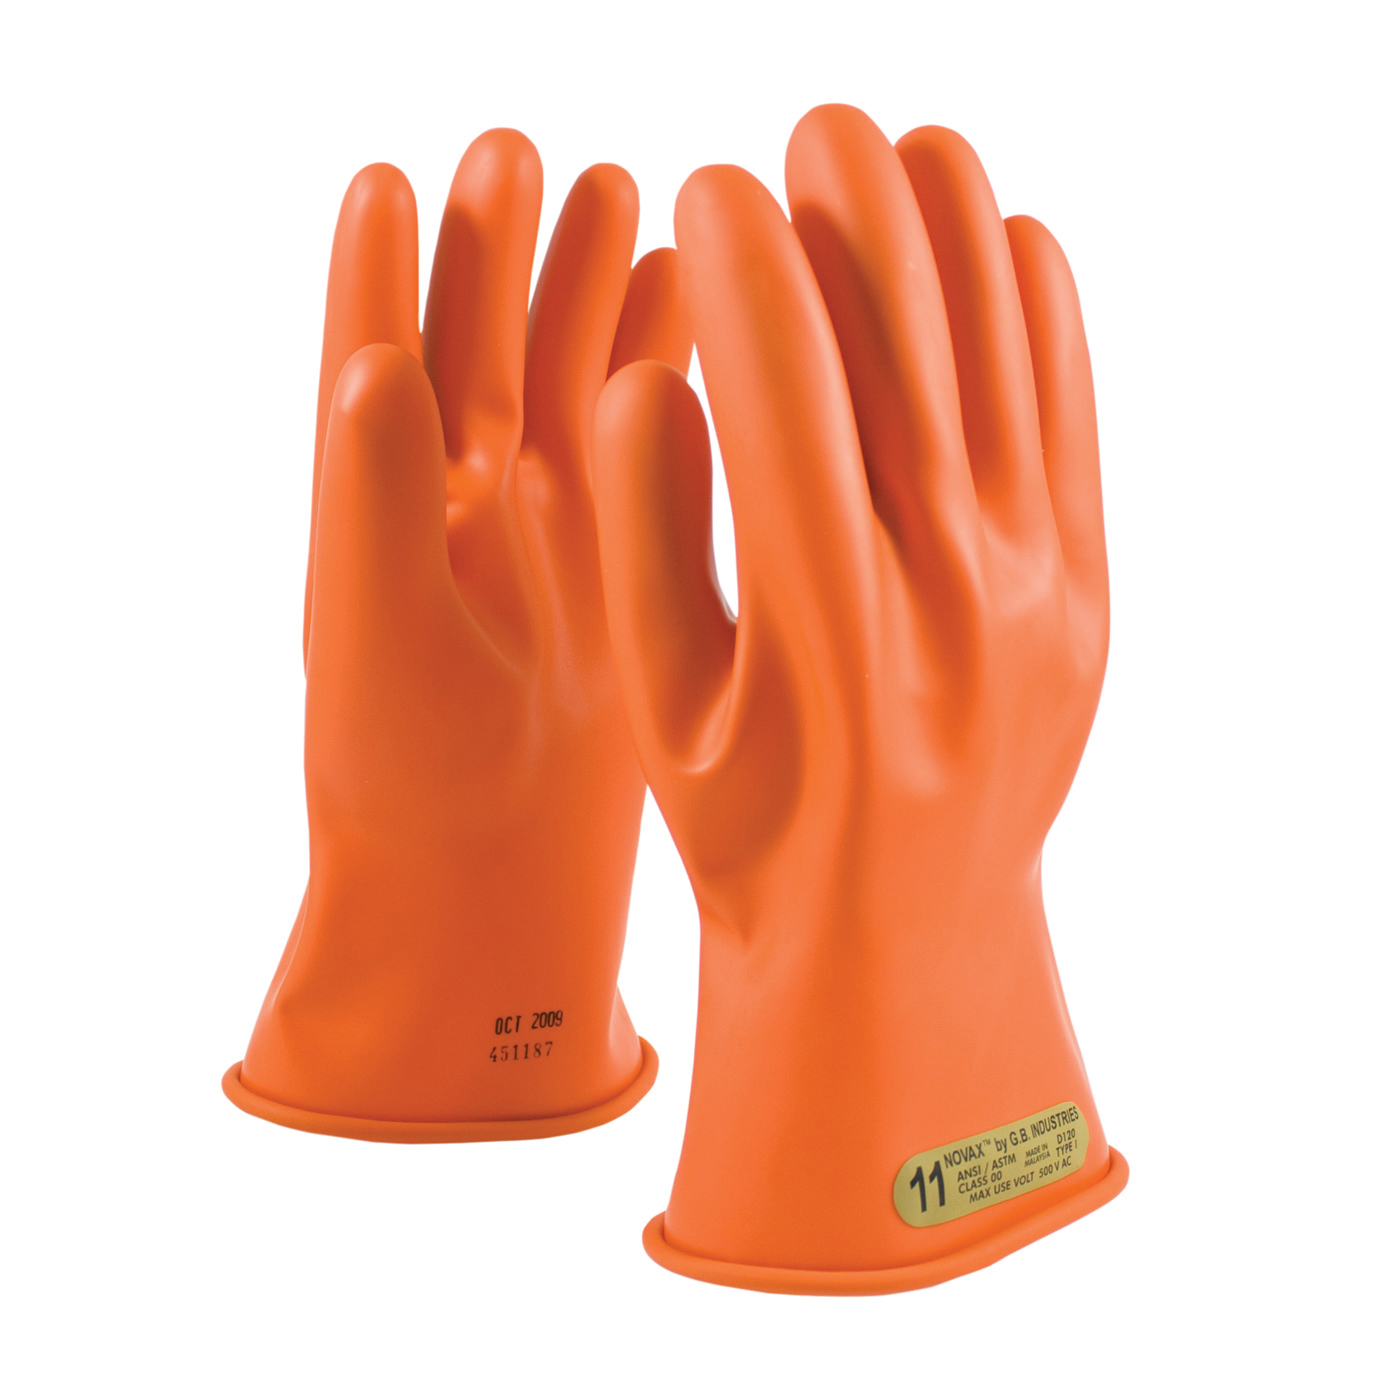 Novax® 147-00-11/9 Insulating Unisex Electrical Safety Gloves, SZ 9, Natural Rubber, Orange, 11 in L, ASTM Class: Class 00, 500 VAC/750 VDC Max Use Voltage